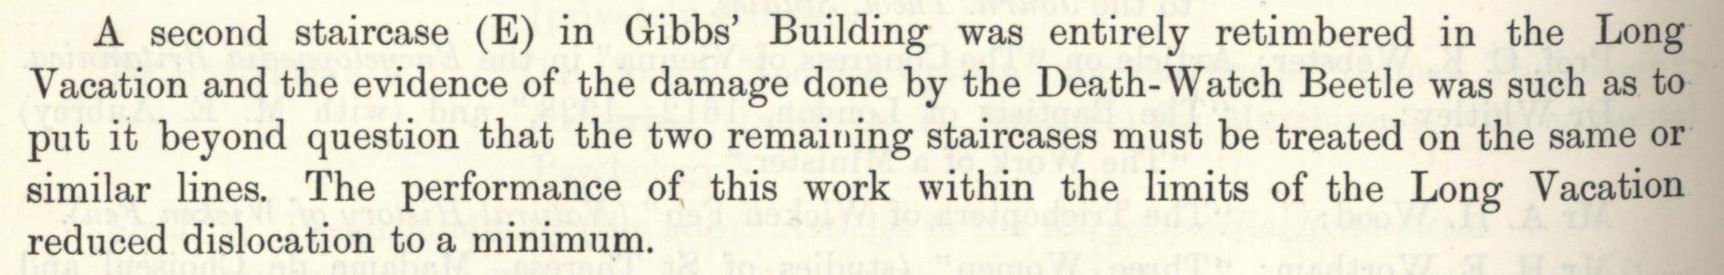 The re-timbering of the E staircase of the Gibbs building, due to damage caused by the death-watch beetle, and the need for the remaining two staircases to be treated on the same lines. [Annual Report, 1929]